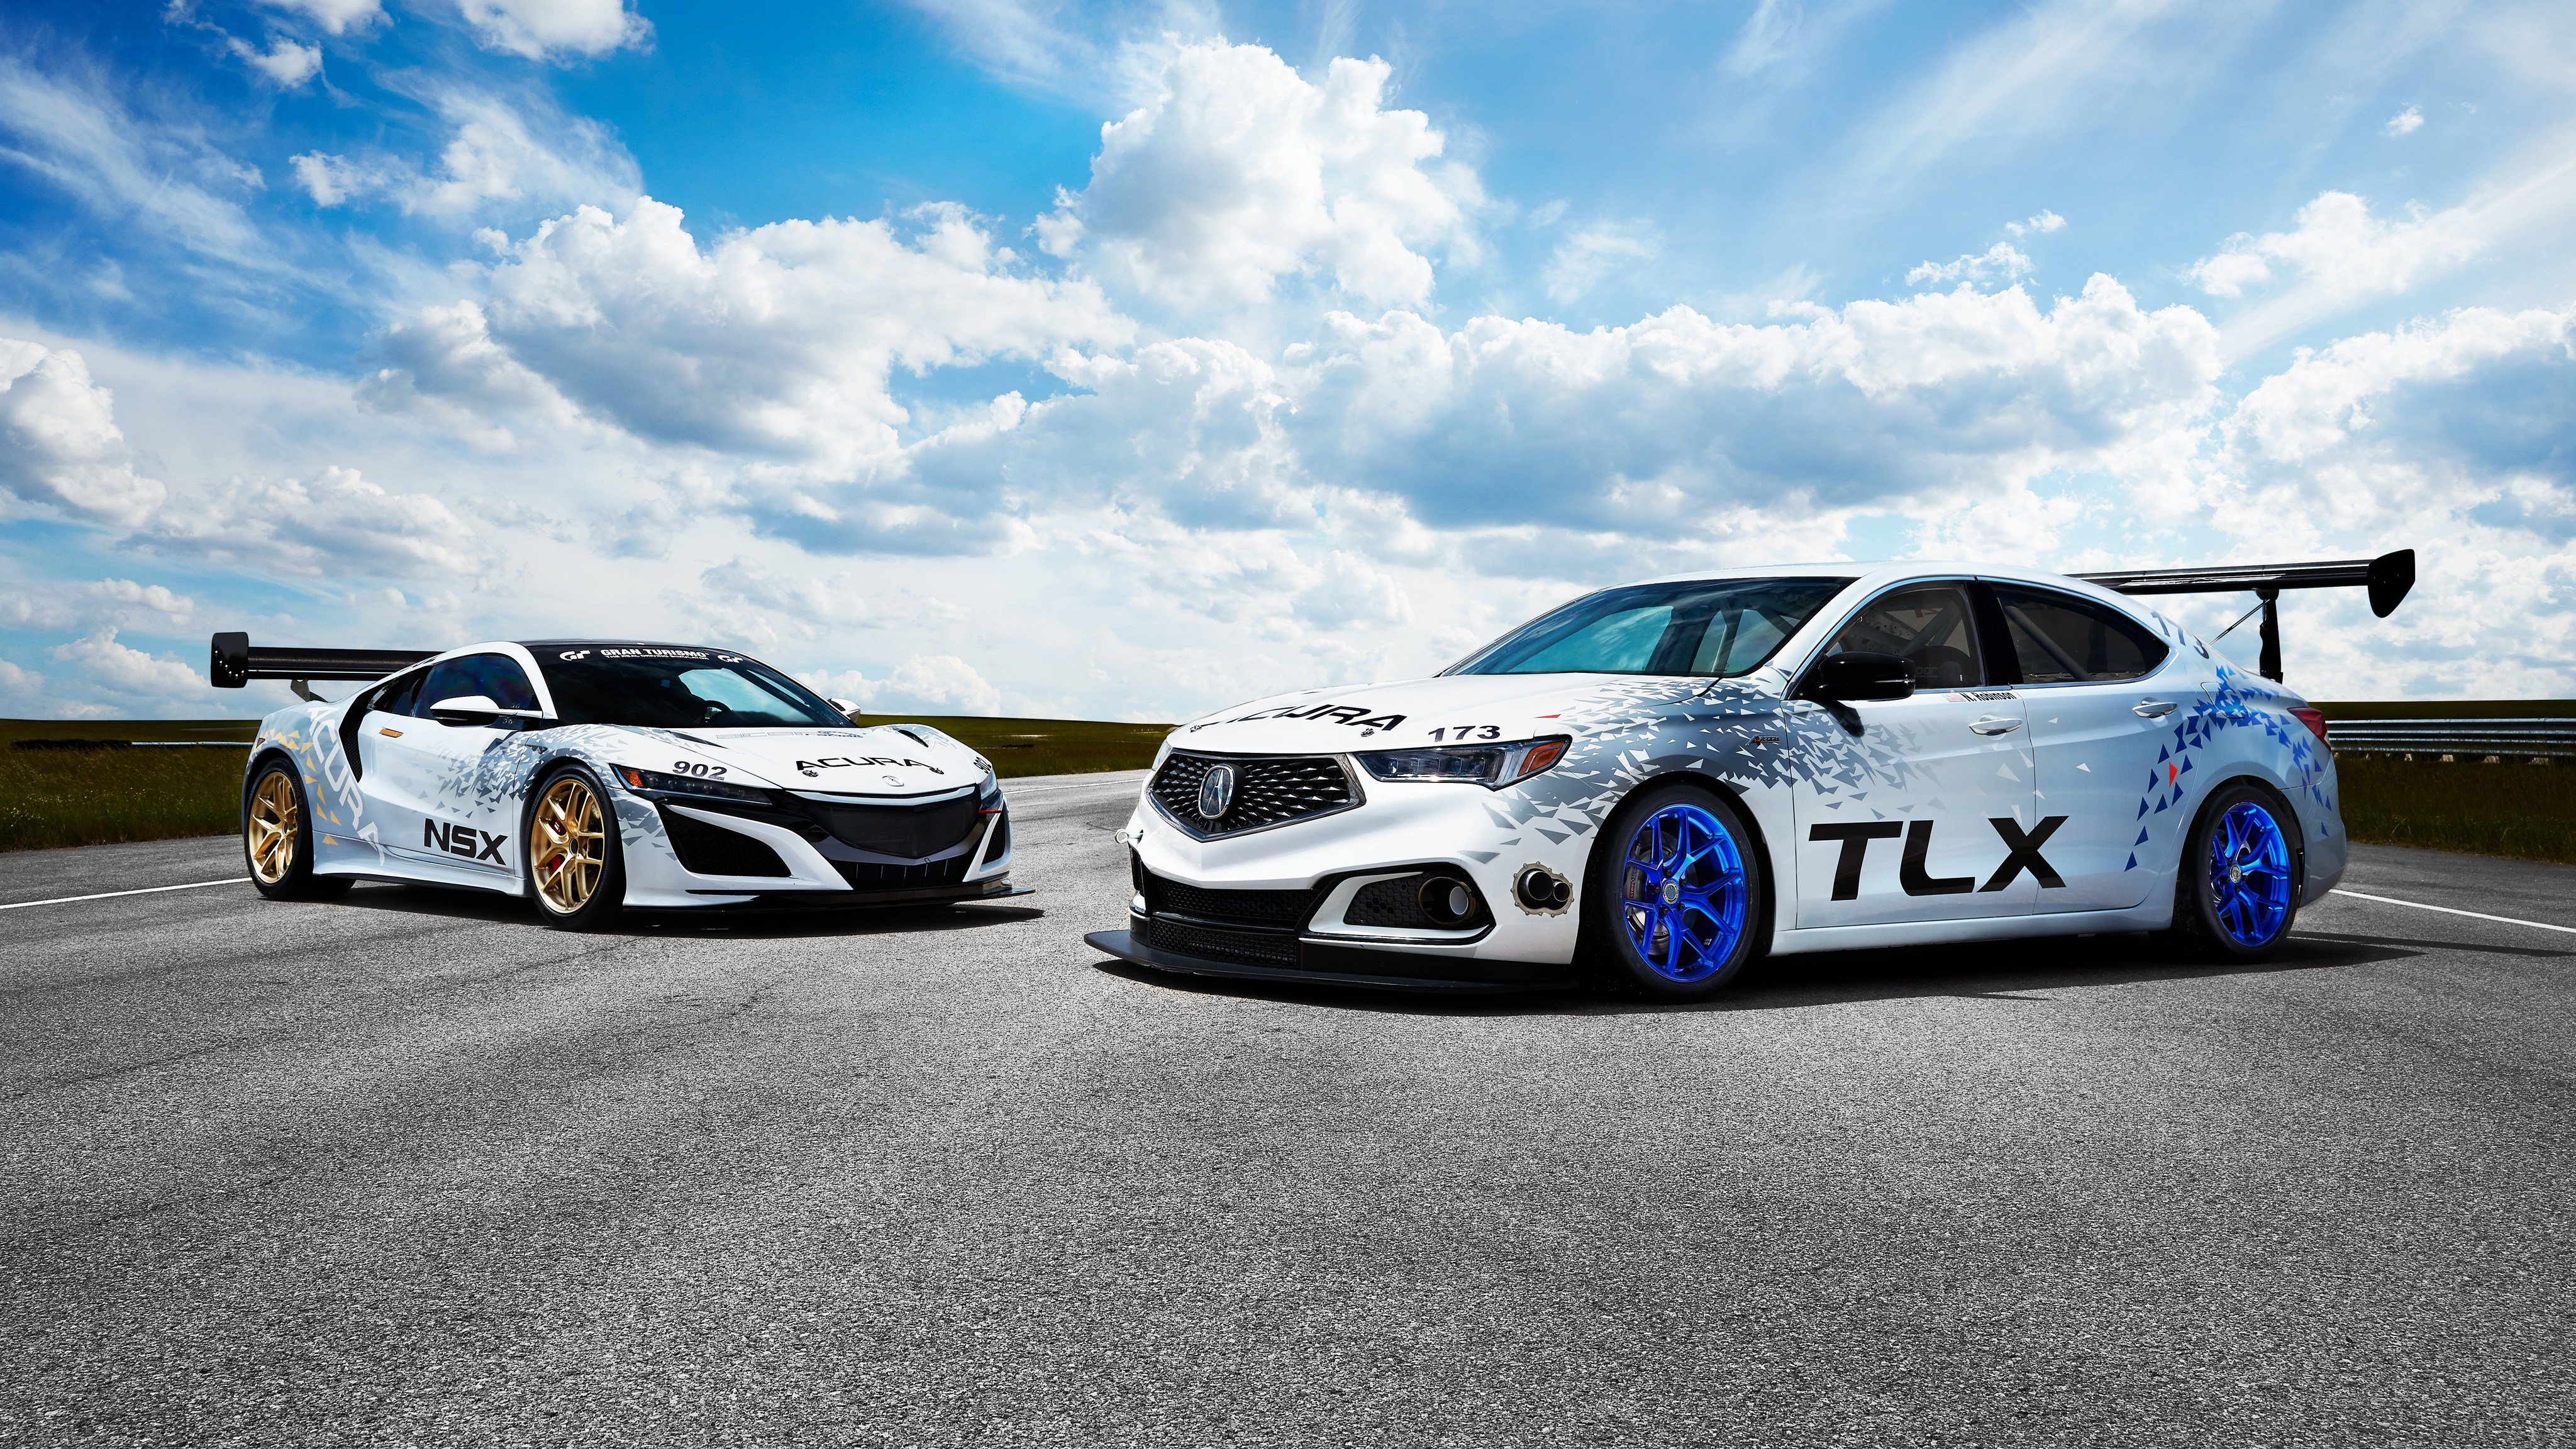 Latest Acura Tlx 2018 4K Wallpaper Hd Car Wallpapers Id 7843 Free Download